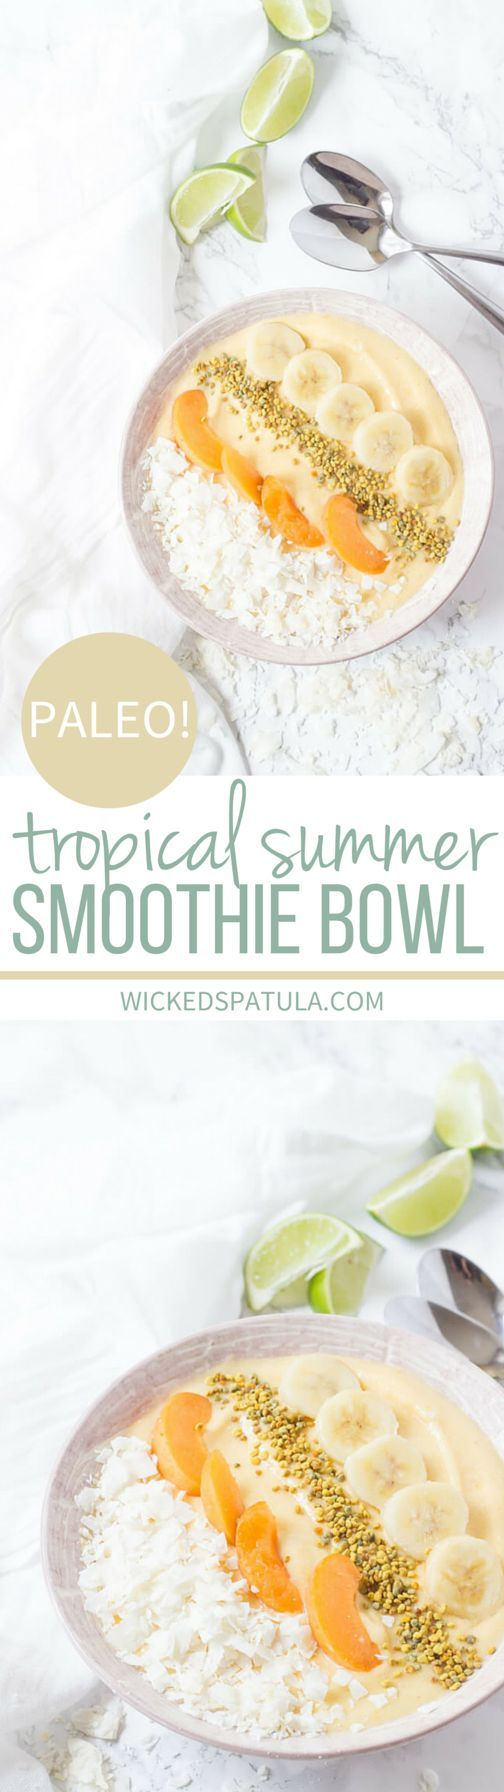 Paleo Tropical Summer Smoothie Bowl #paleo #grainfree #glutenfree